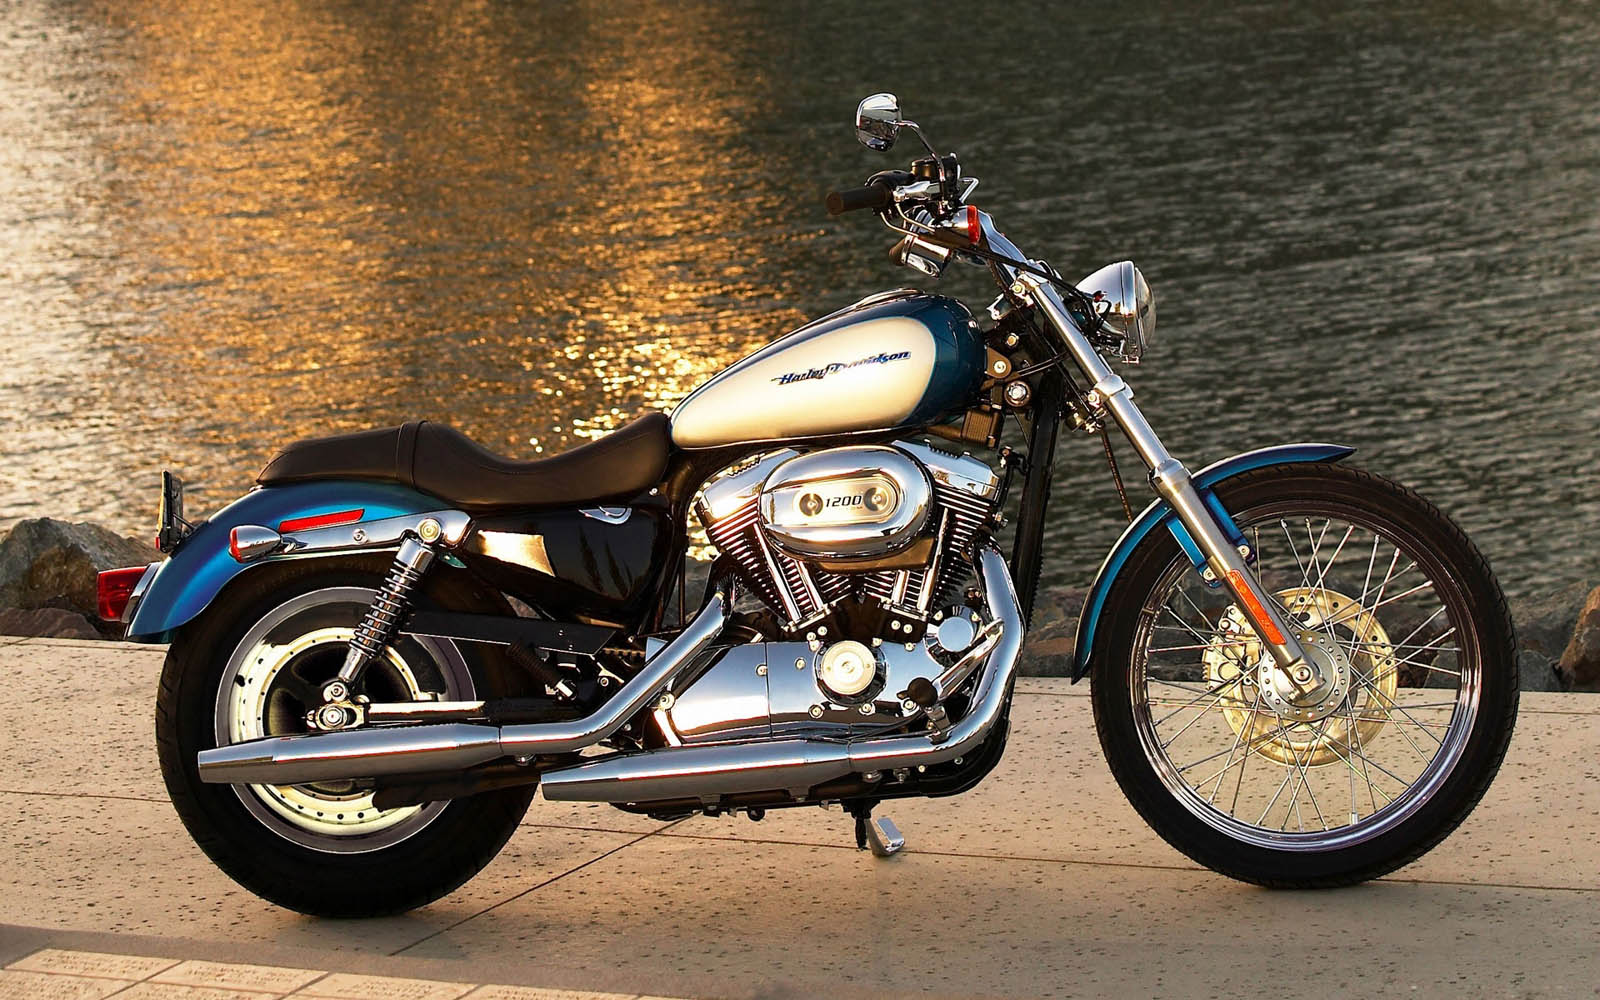 wallpapers: Harley Davidson Bikes Wallpapers